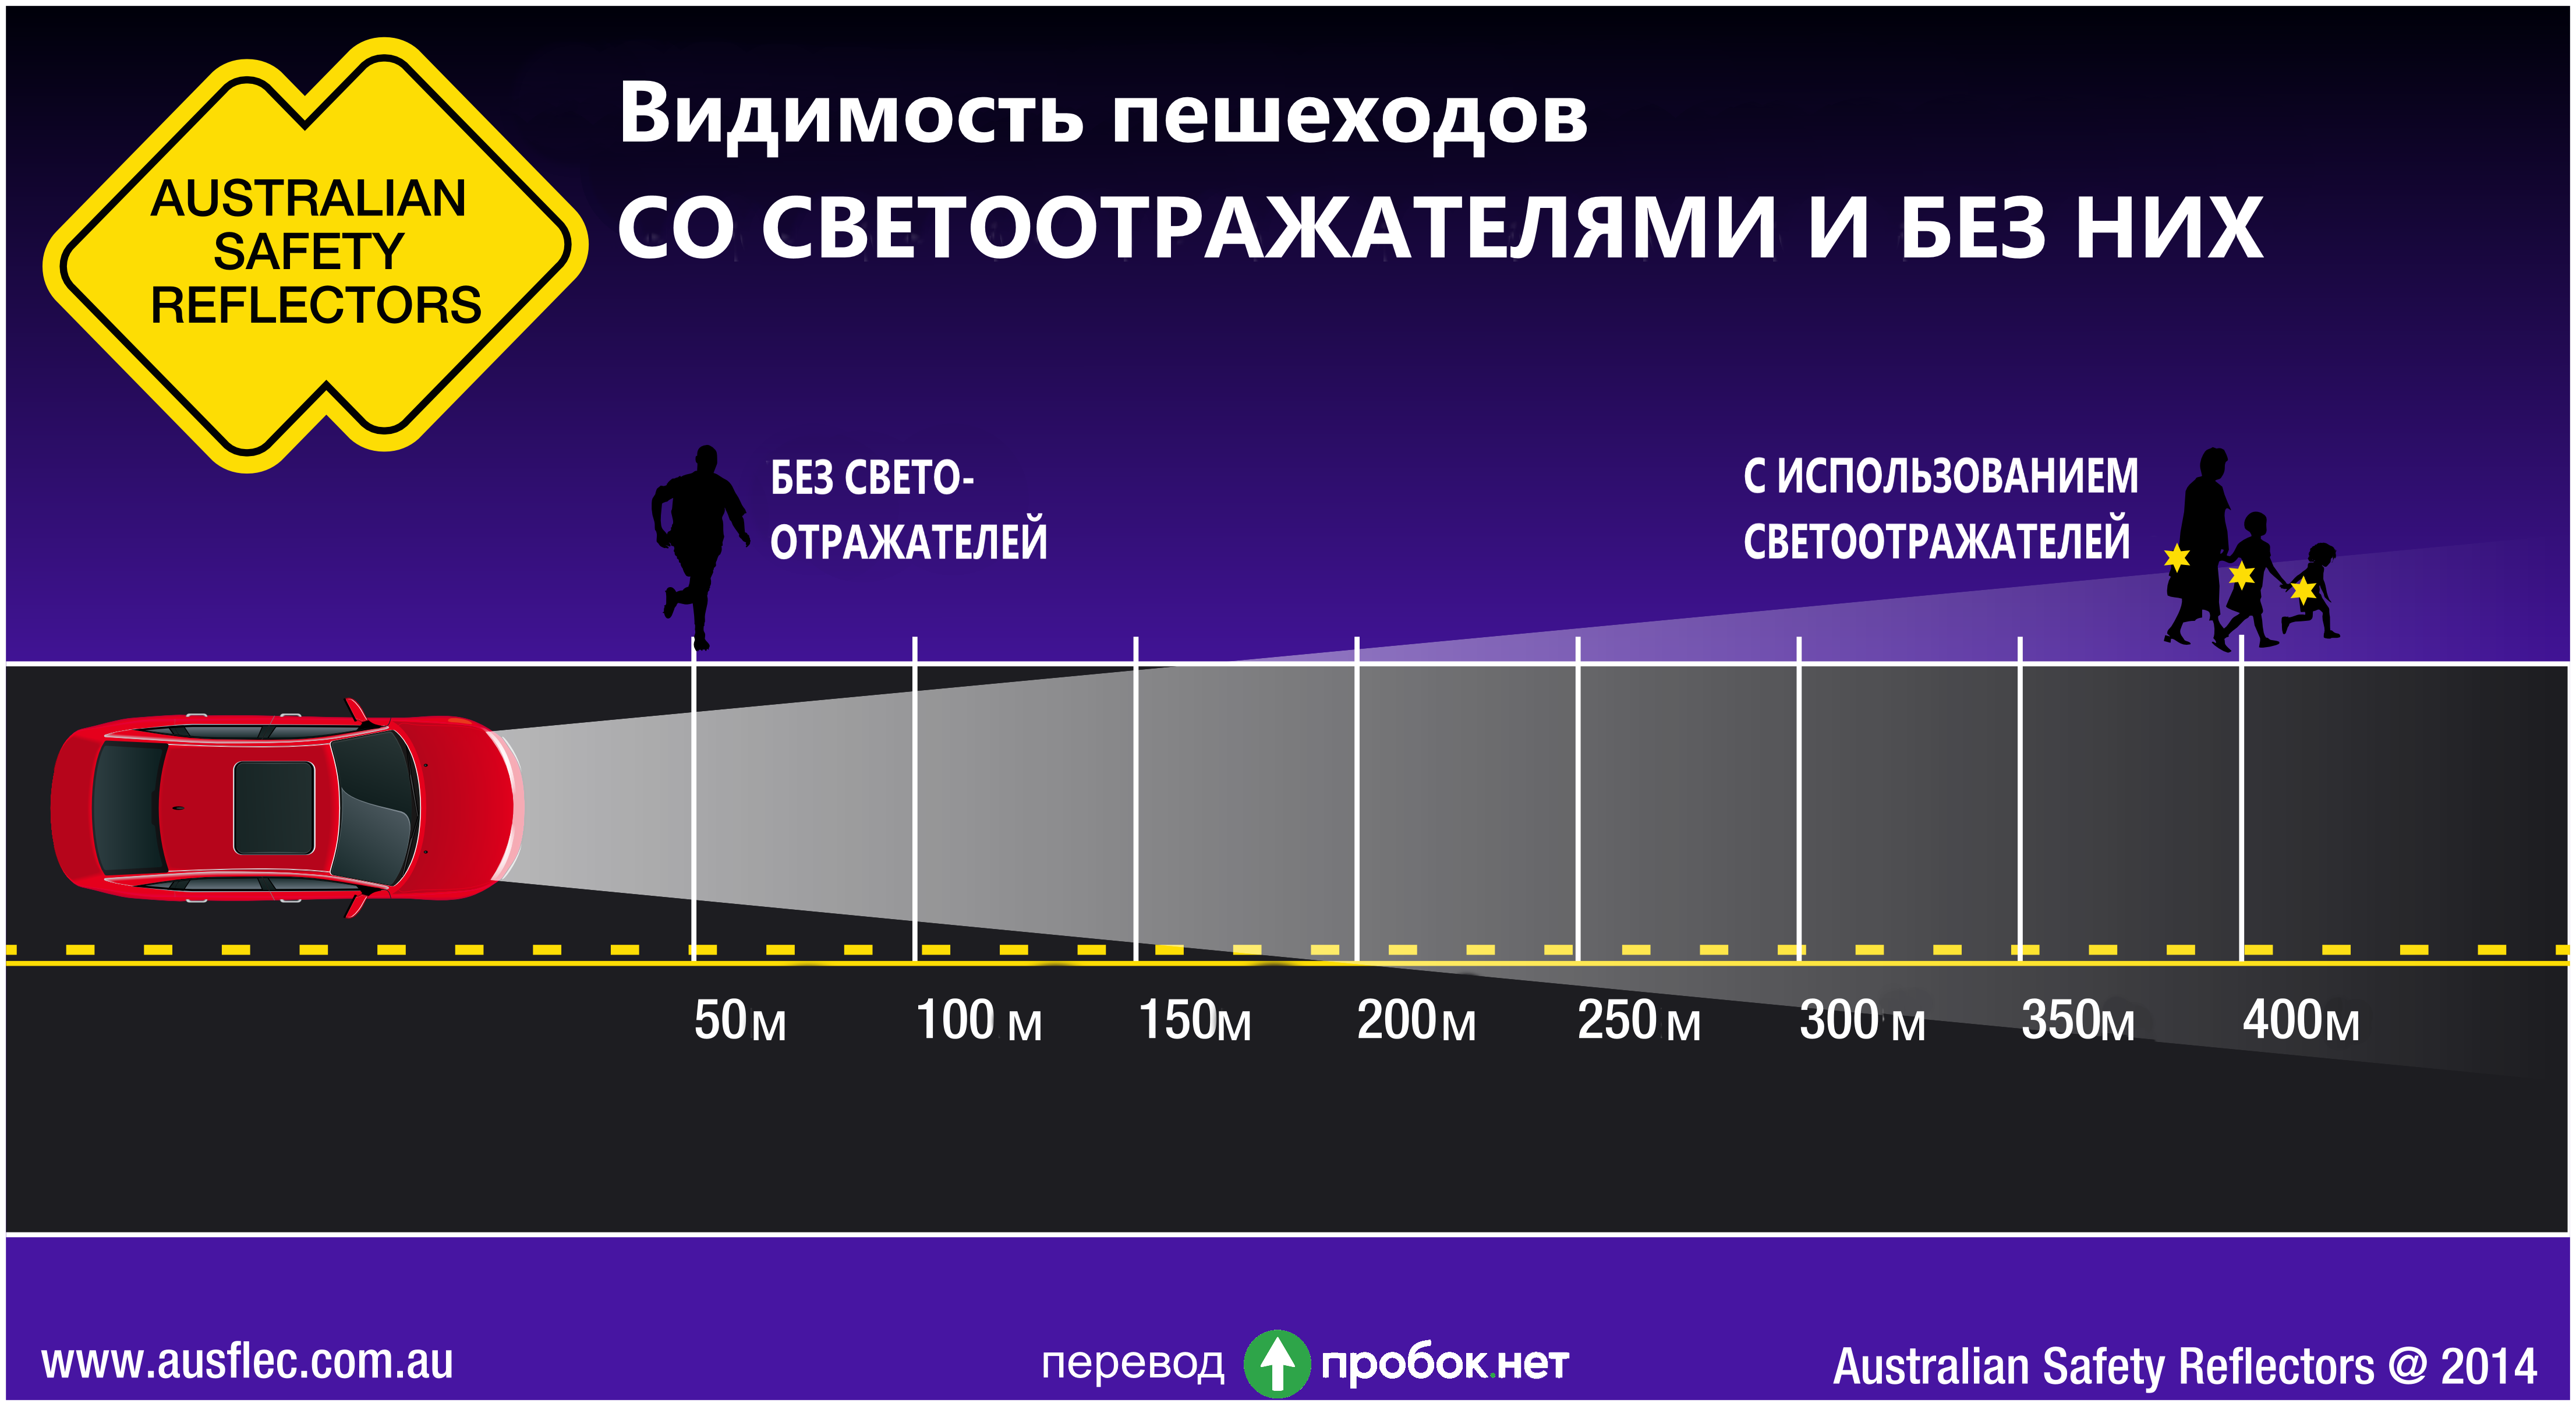 Personal_Safety_Reflectors_Distance_Infographic_2014-RU